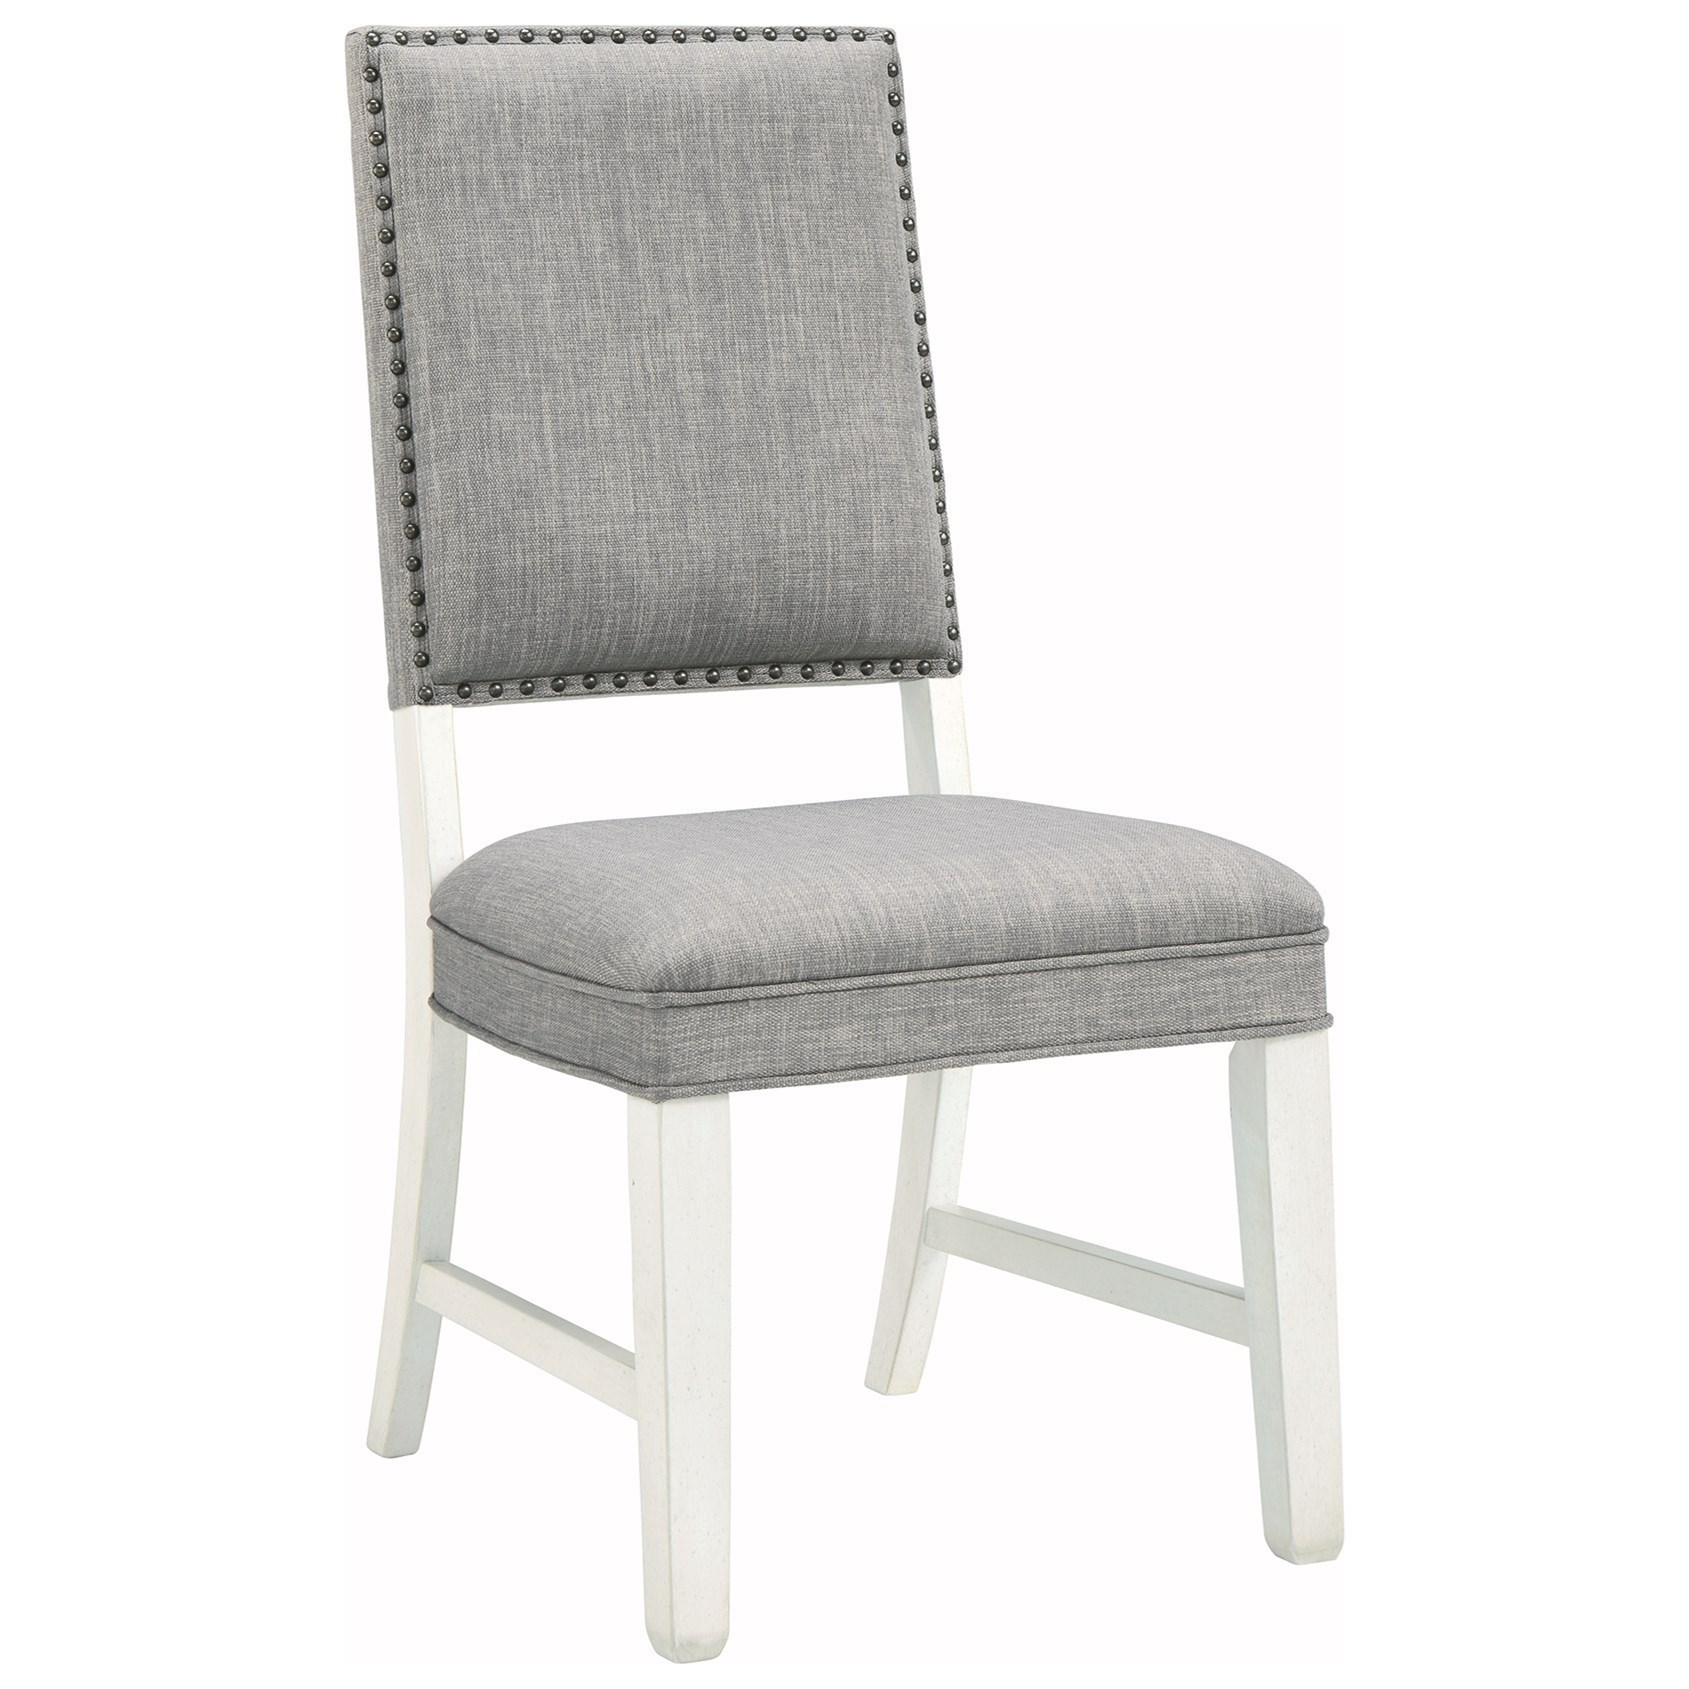 Nashbryn Dining Chair by Benchcraft at Northeast Factory Direct